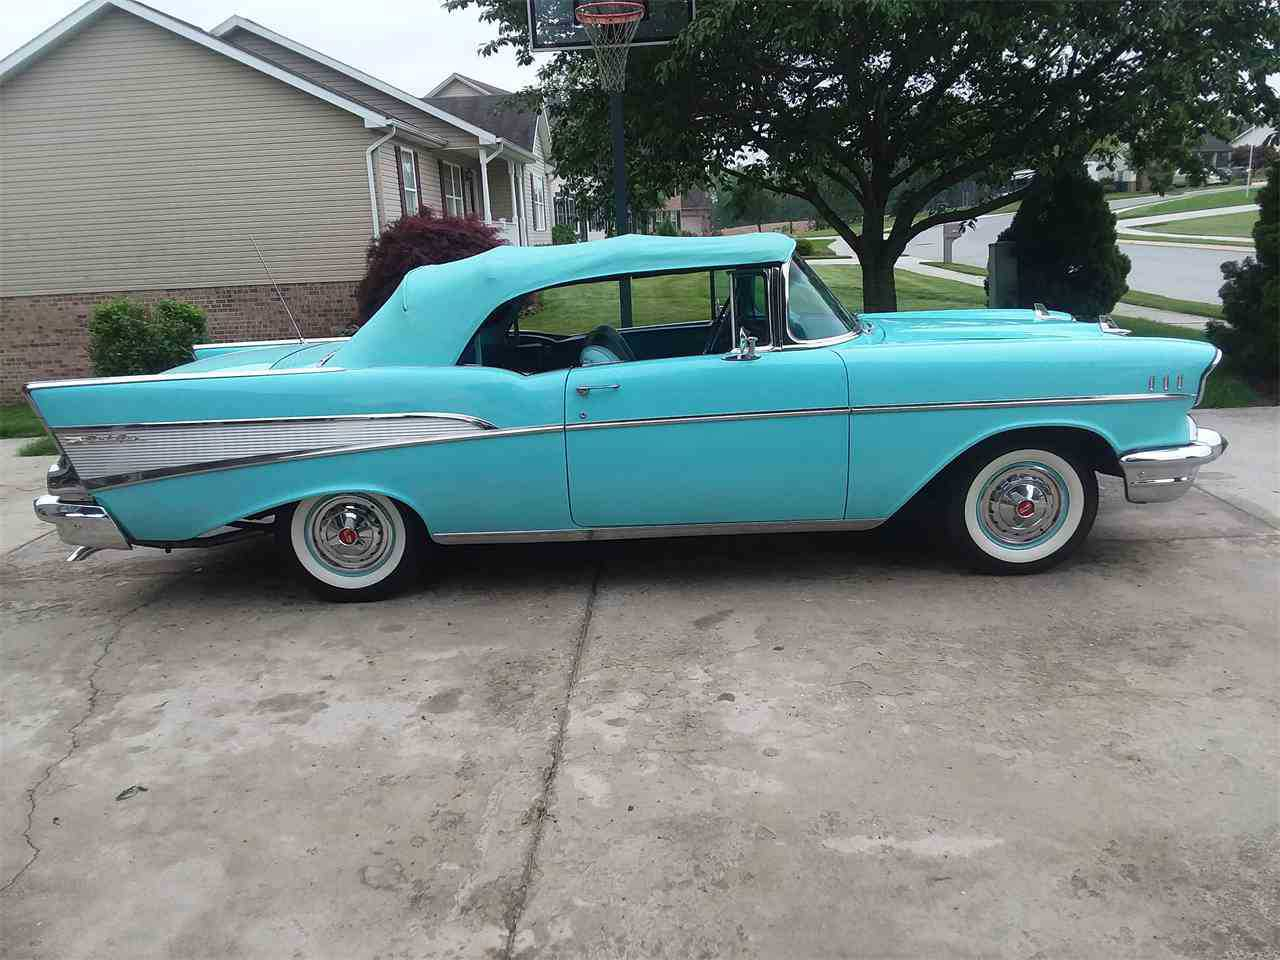 1957 Chevrolet Bel Air Convertible For Sale In Vc57f129216 Chevy Bellaire